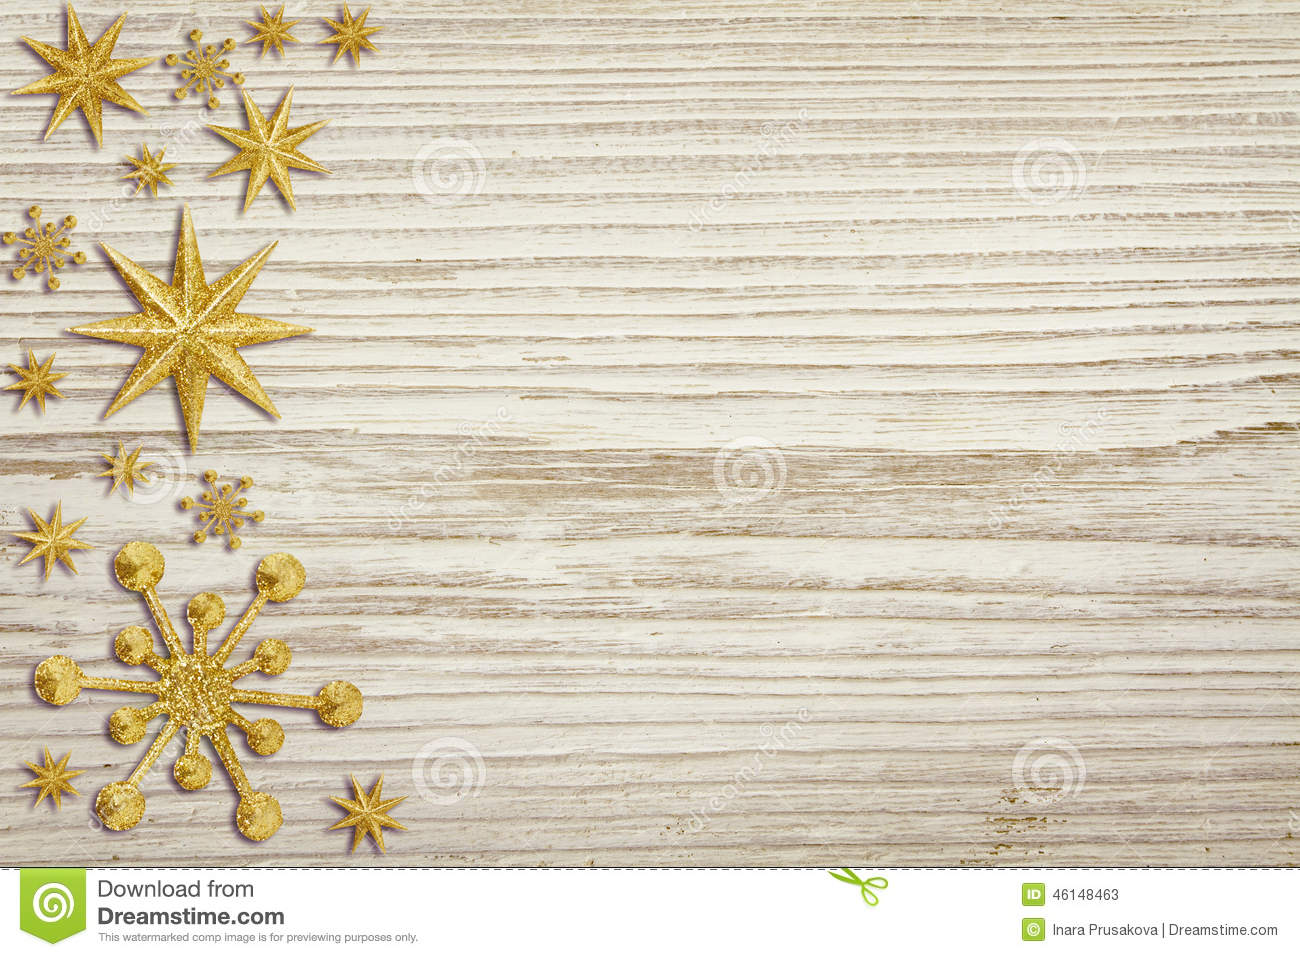 Decorative White Boards christmas wooden background, snow stars decoration, white wood